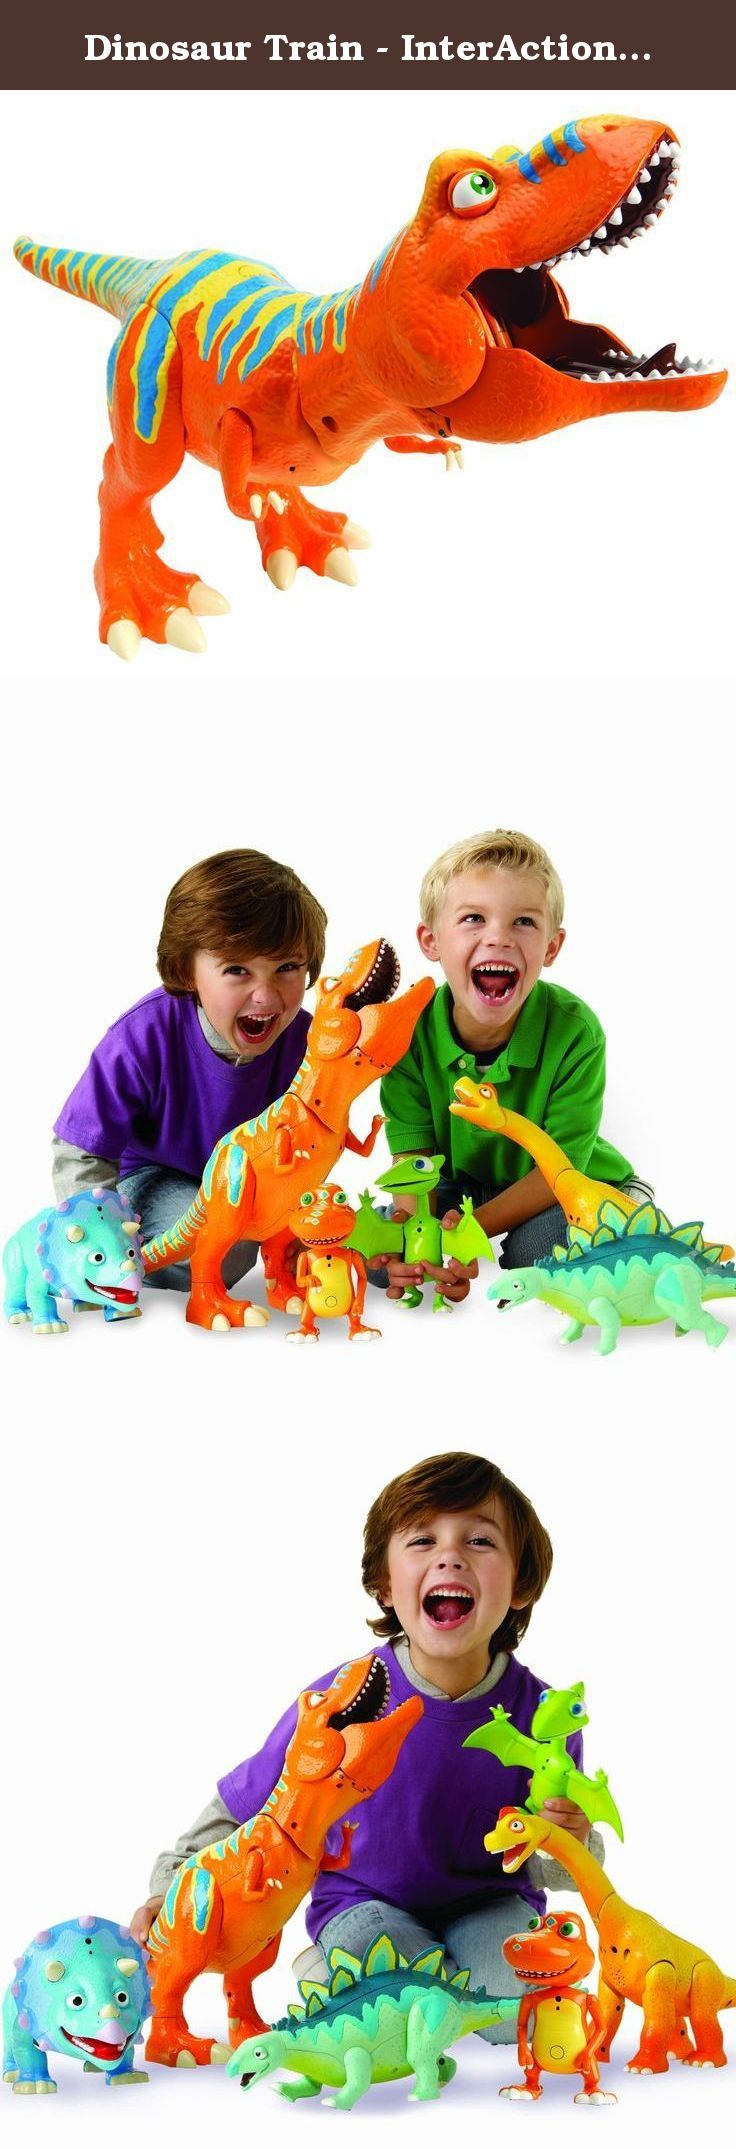 "Dinosaur Train - InterAction Roar 'N React Boris Tyrannosaurus Ultimate T-Rex. The large T-Rex Action Figure's interactive features include an IR Transmitter/Receiver, giving him the ability to recognize and interact with other dinos in the line, poseable arms, sounds/reactions in nose, forehead, and mouth. Two main features include a ""bite"" trigger, as well as a ROAR Position Trigger. Based on the Henson PBS show, Dinosaur Train is more than Dinosaur Play; it's a truly interactive…"